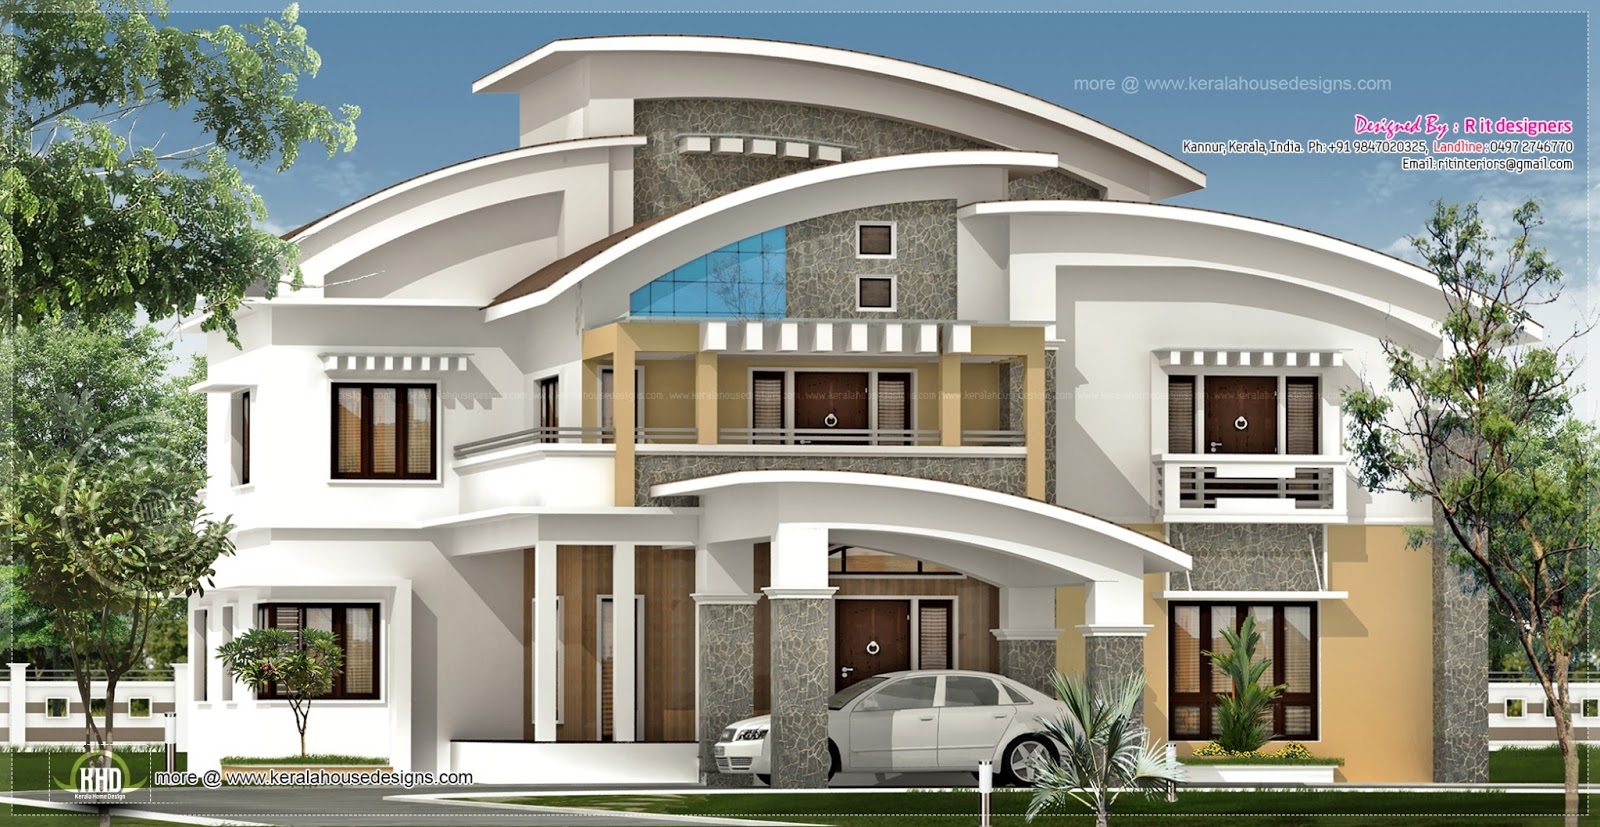 3750 square feet luxury villa exterior home kerala plans for Modern luxury villa design